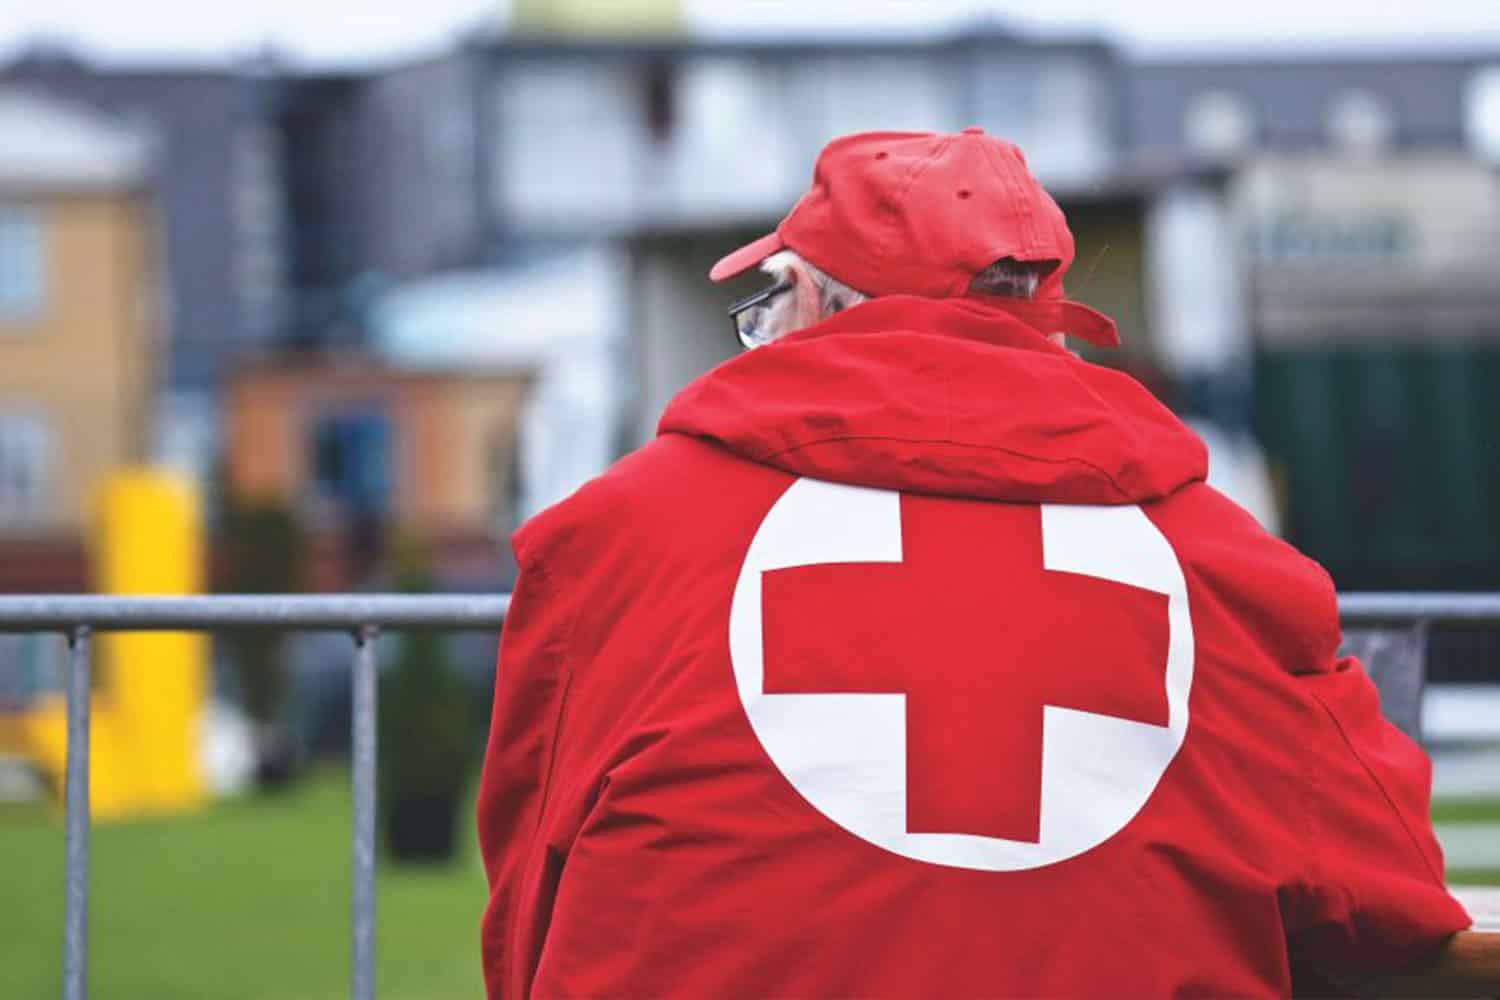 Man with red jacket with red cross on the back